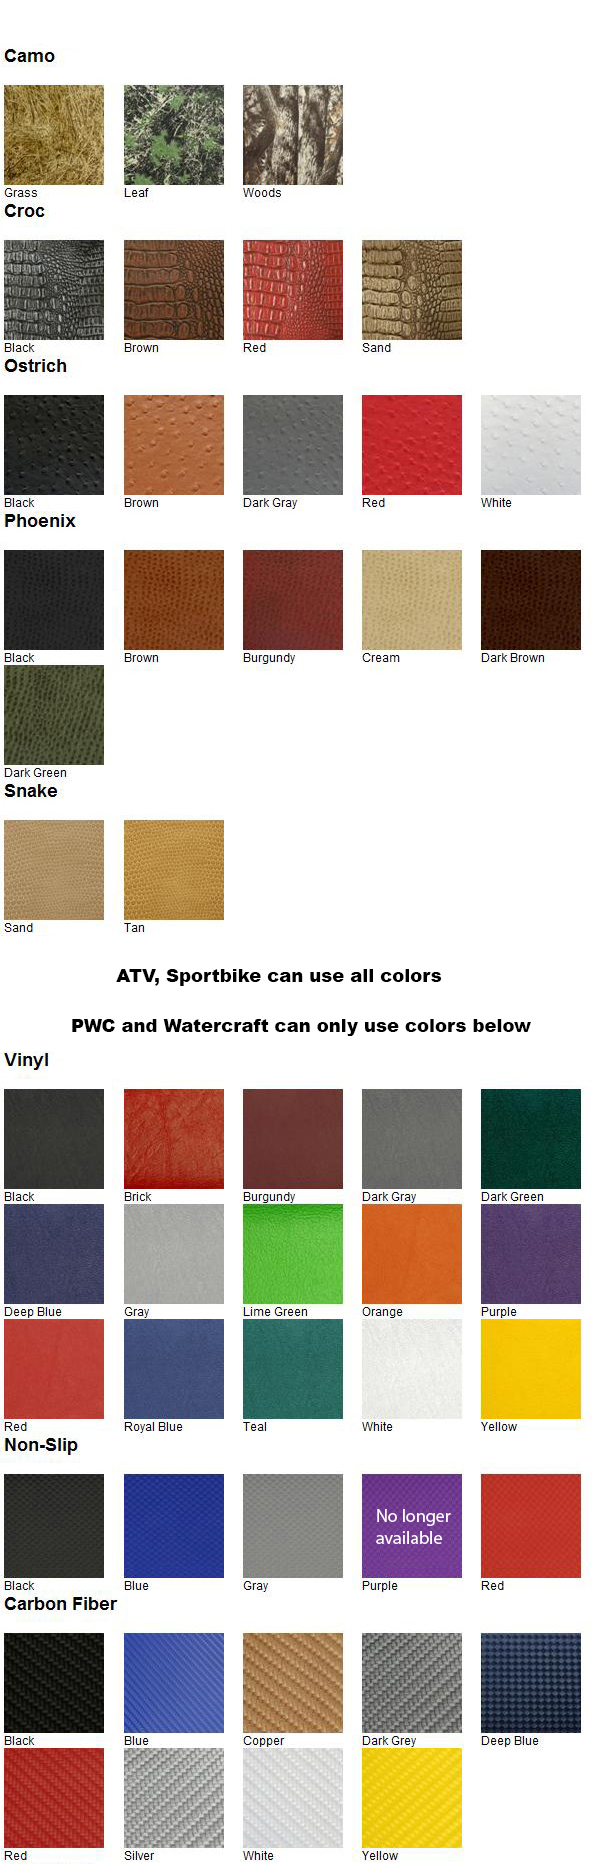 htmoto color chart